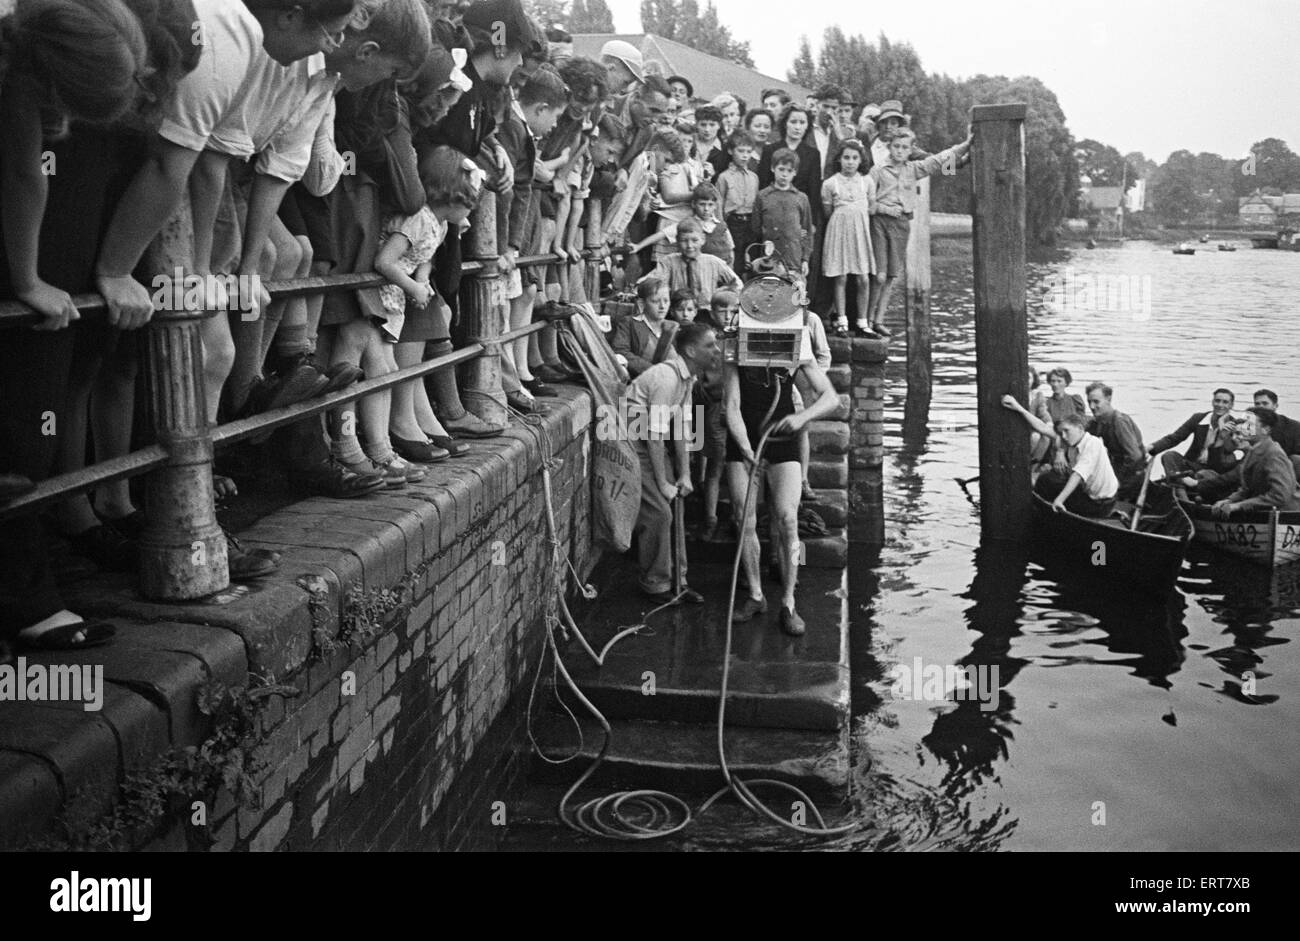 Testing out home made diving equipment, with crowds watching. Wiltshire. Circa 1945. - Stock Image